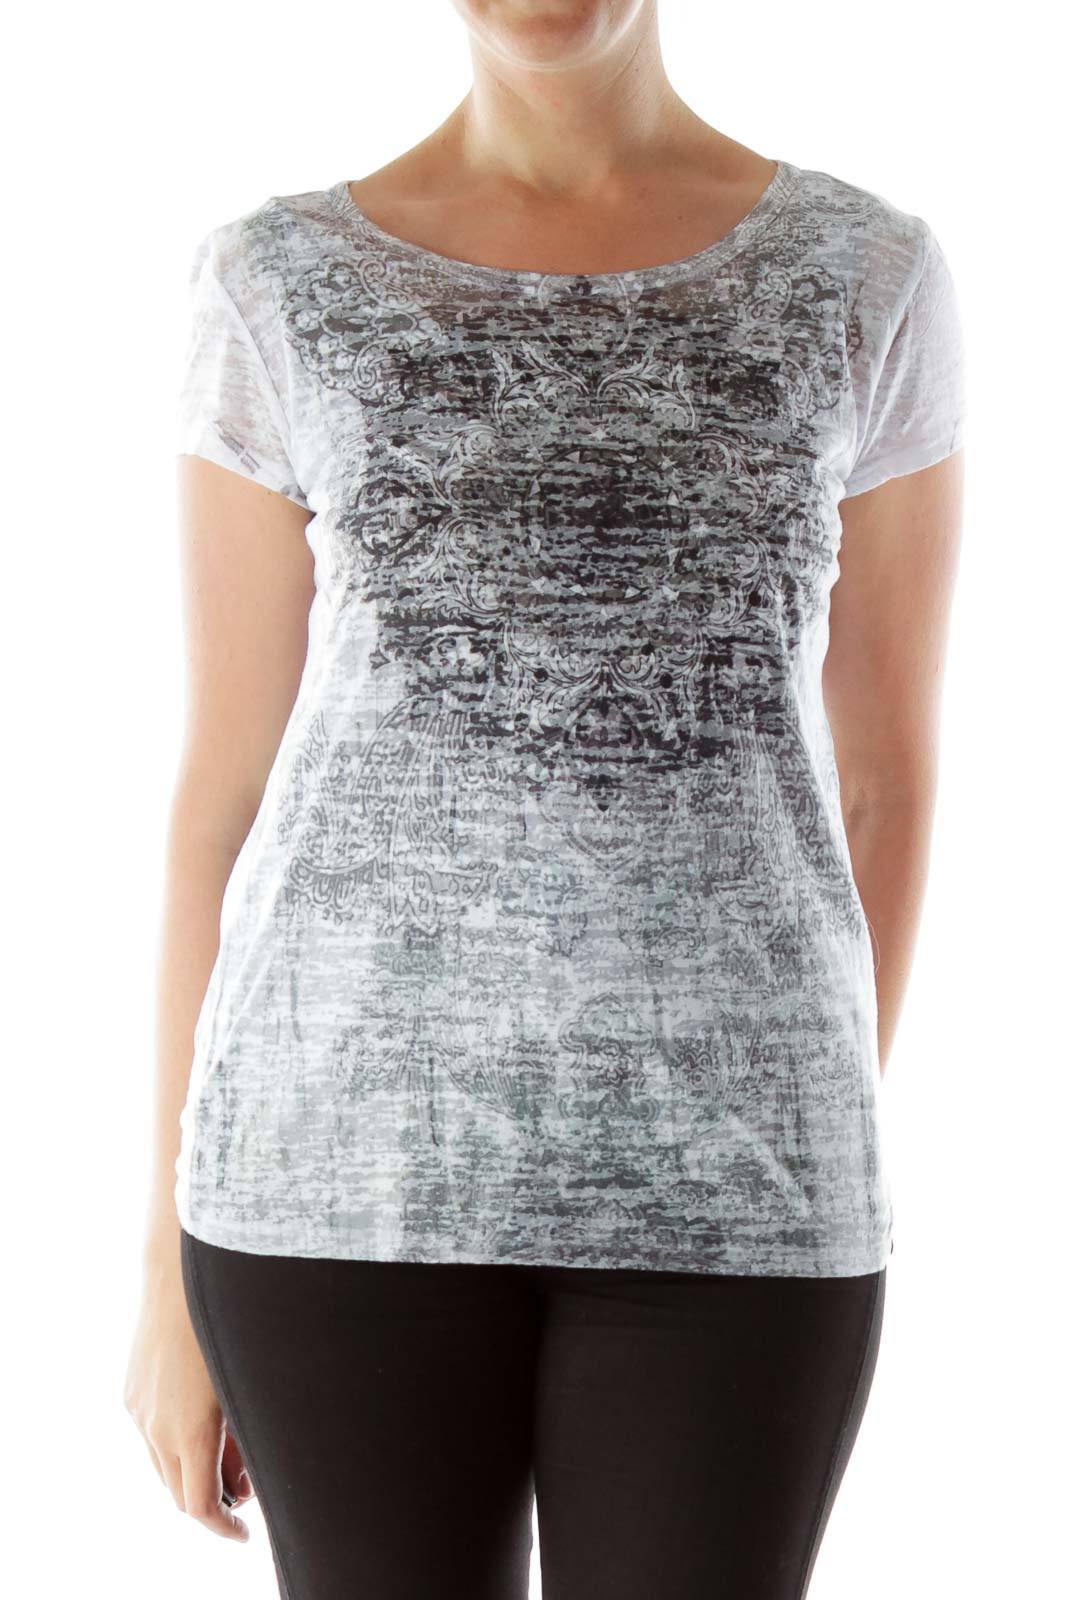 Gray & White Printed Burn Out T Shirt